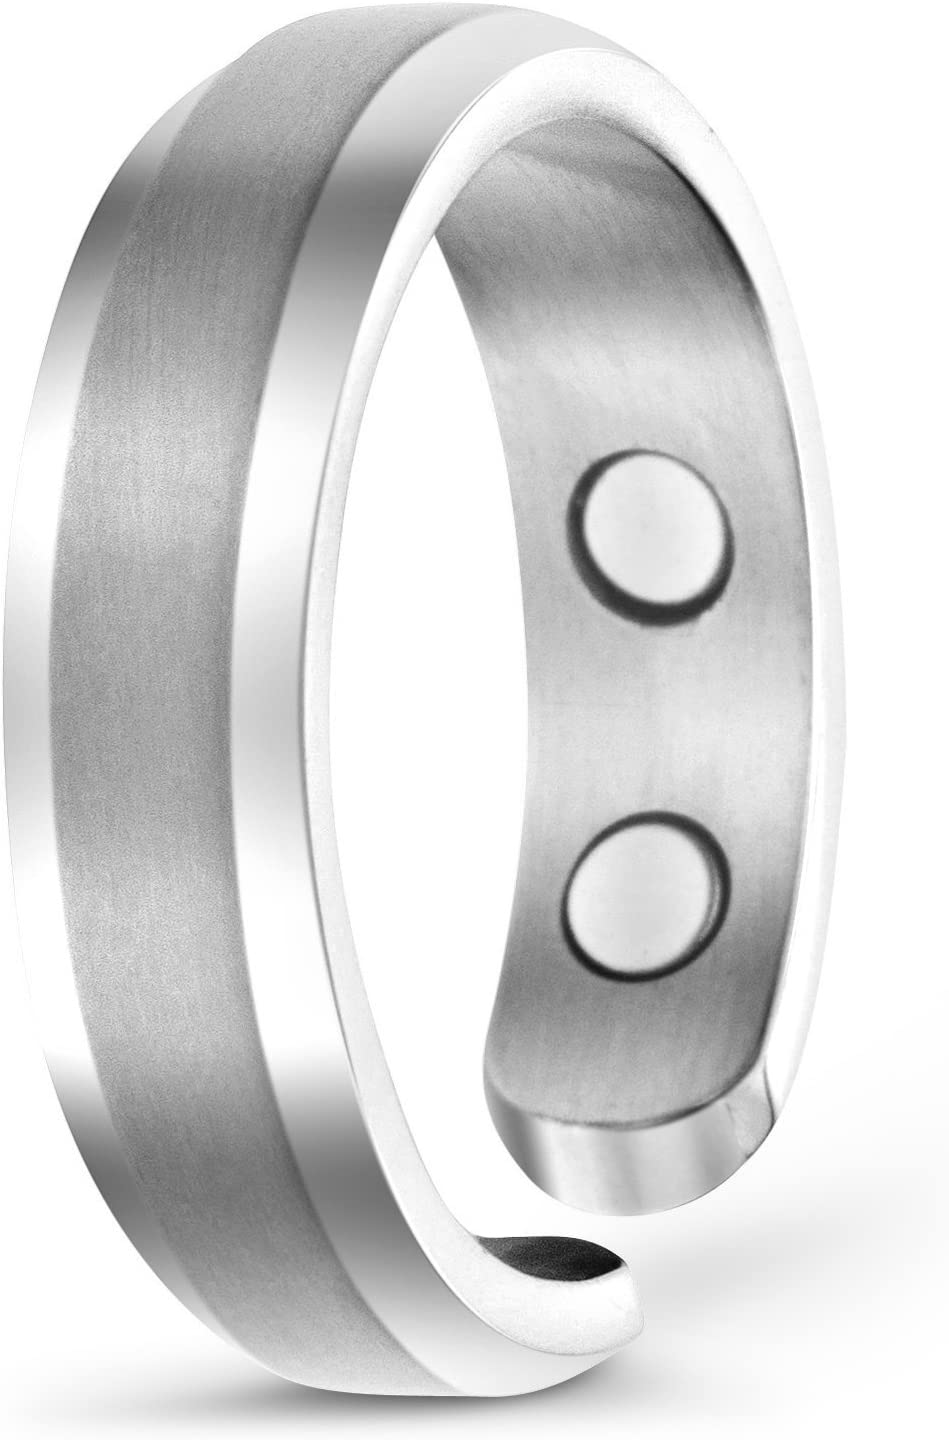 Elegant Titanium Magnetic Therapy Ring Pain Relief for Arthritis and Carpal Tunnel: Health & Personal Care